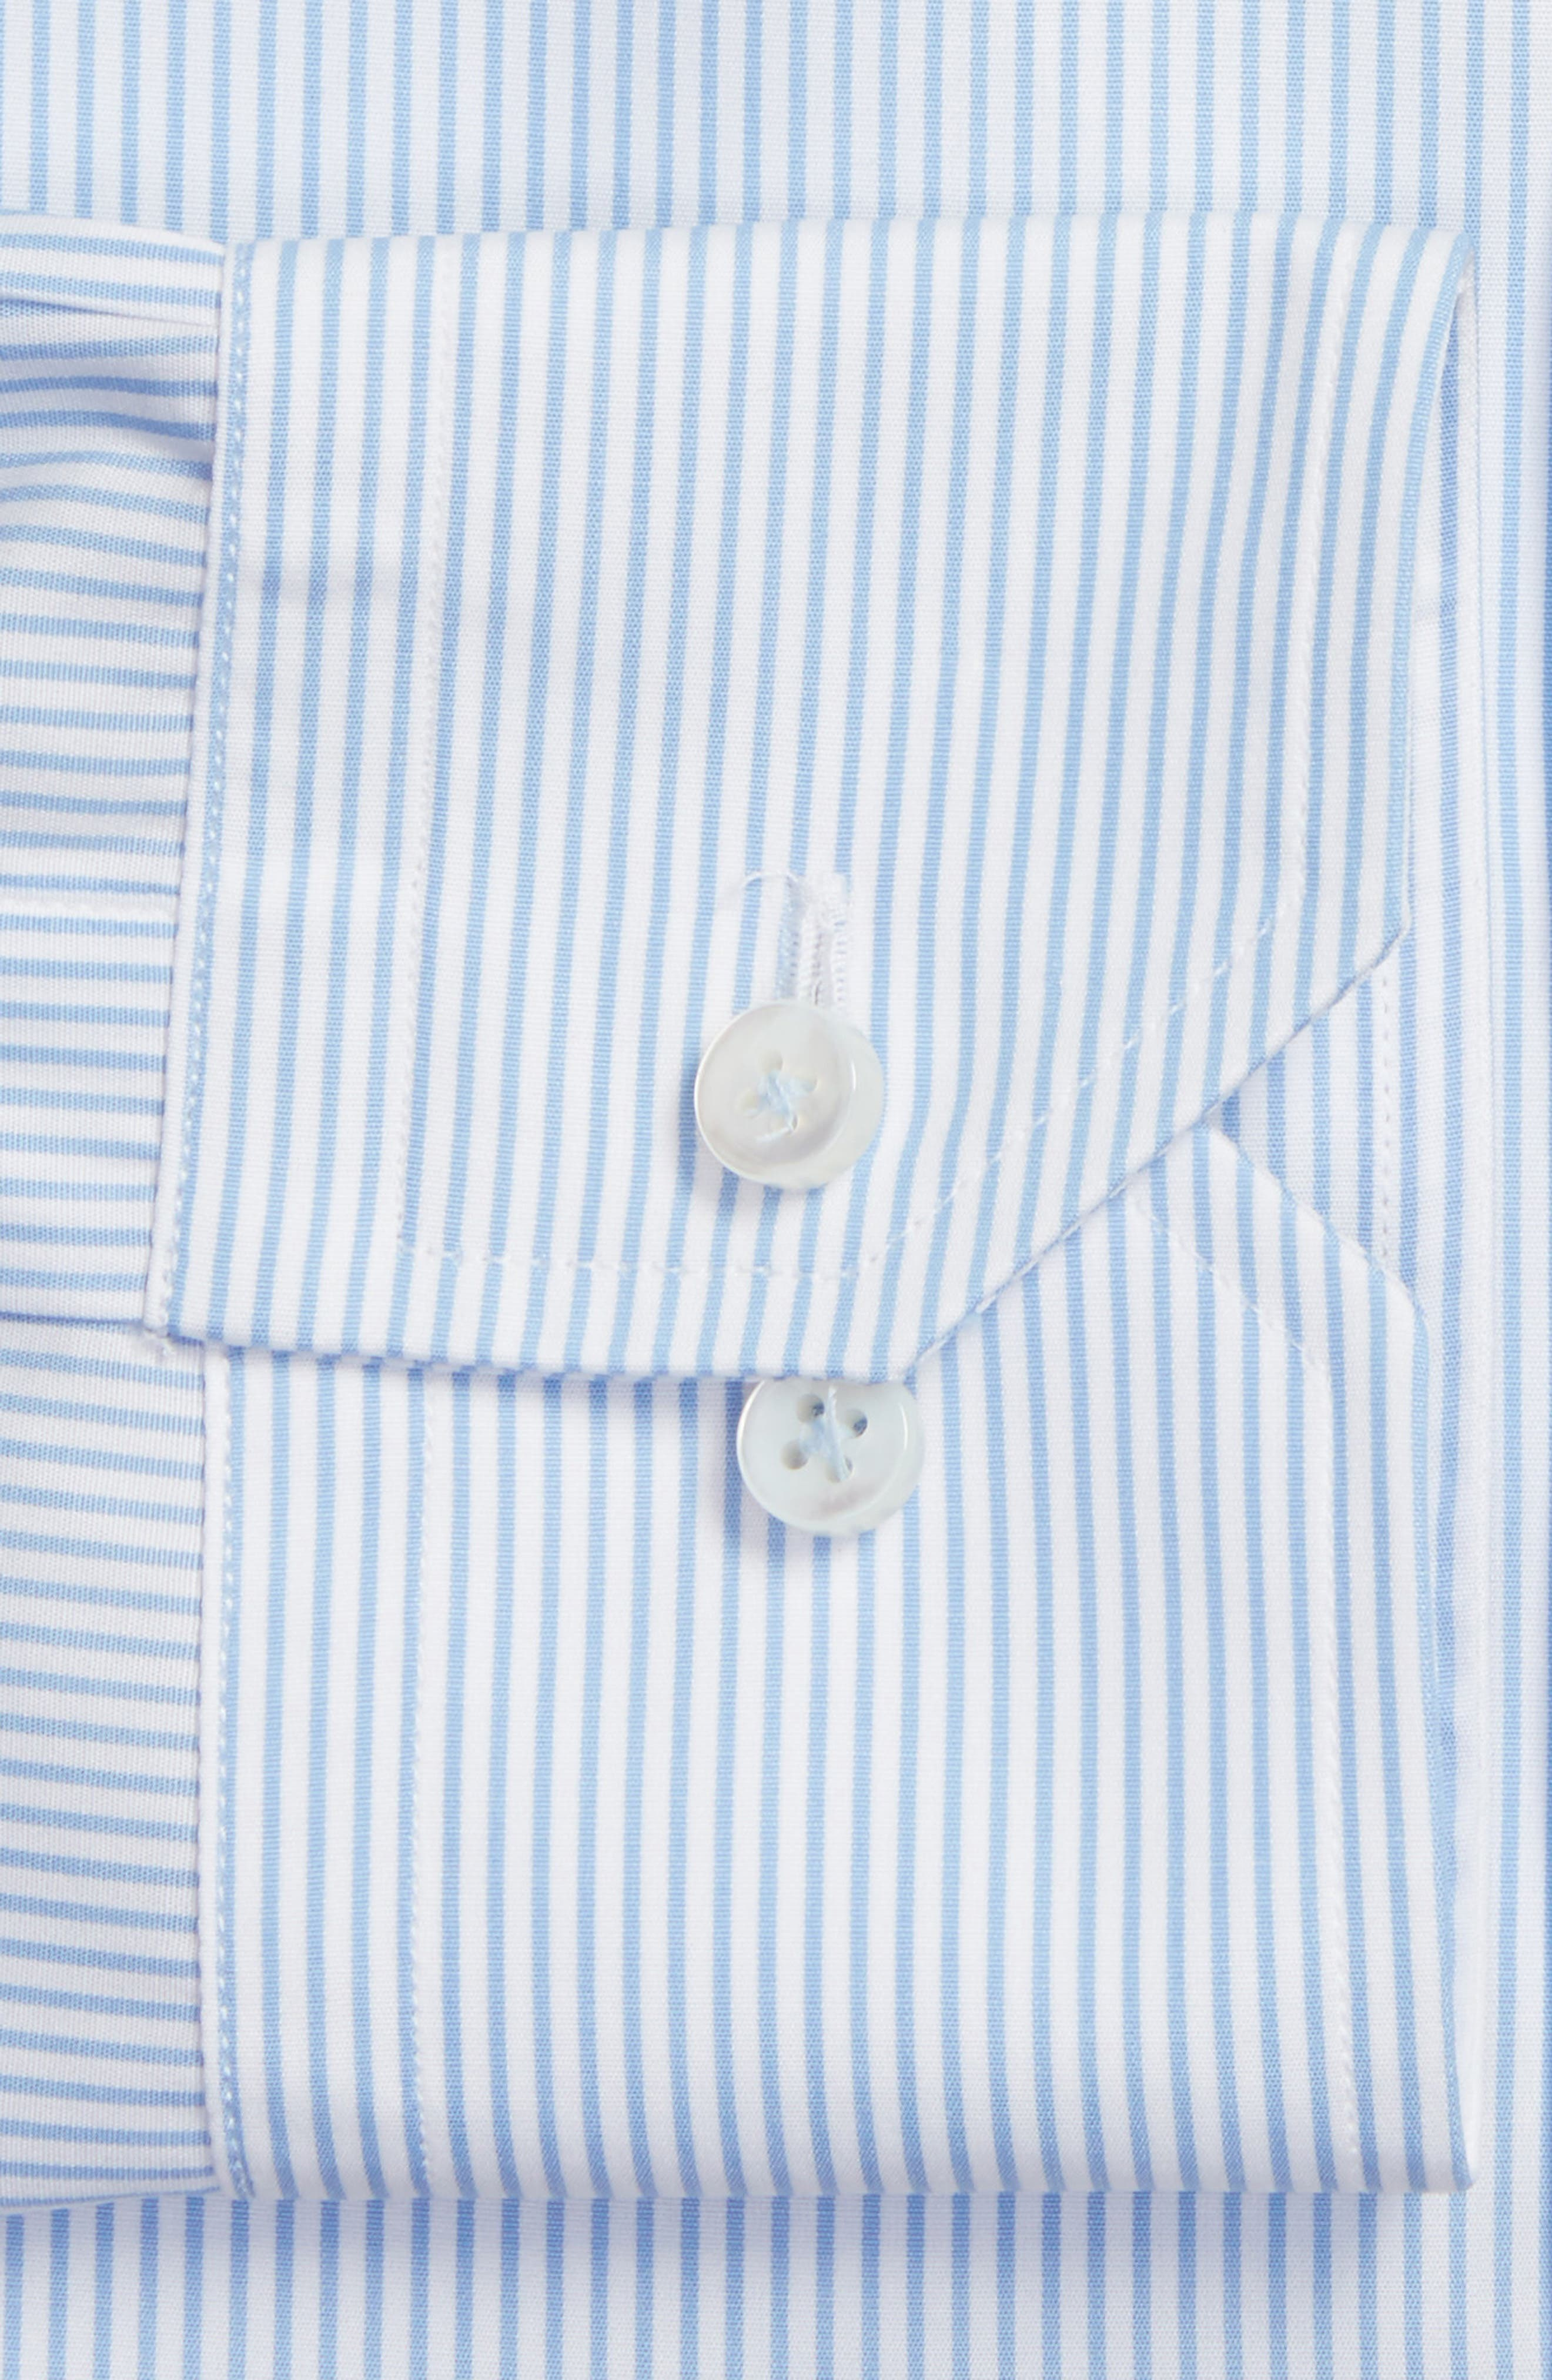 Tailored Fit Stripe Dress Shirt,                             Alternate thumbnail 2, color,                             SKY